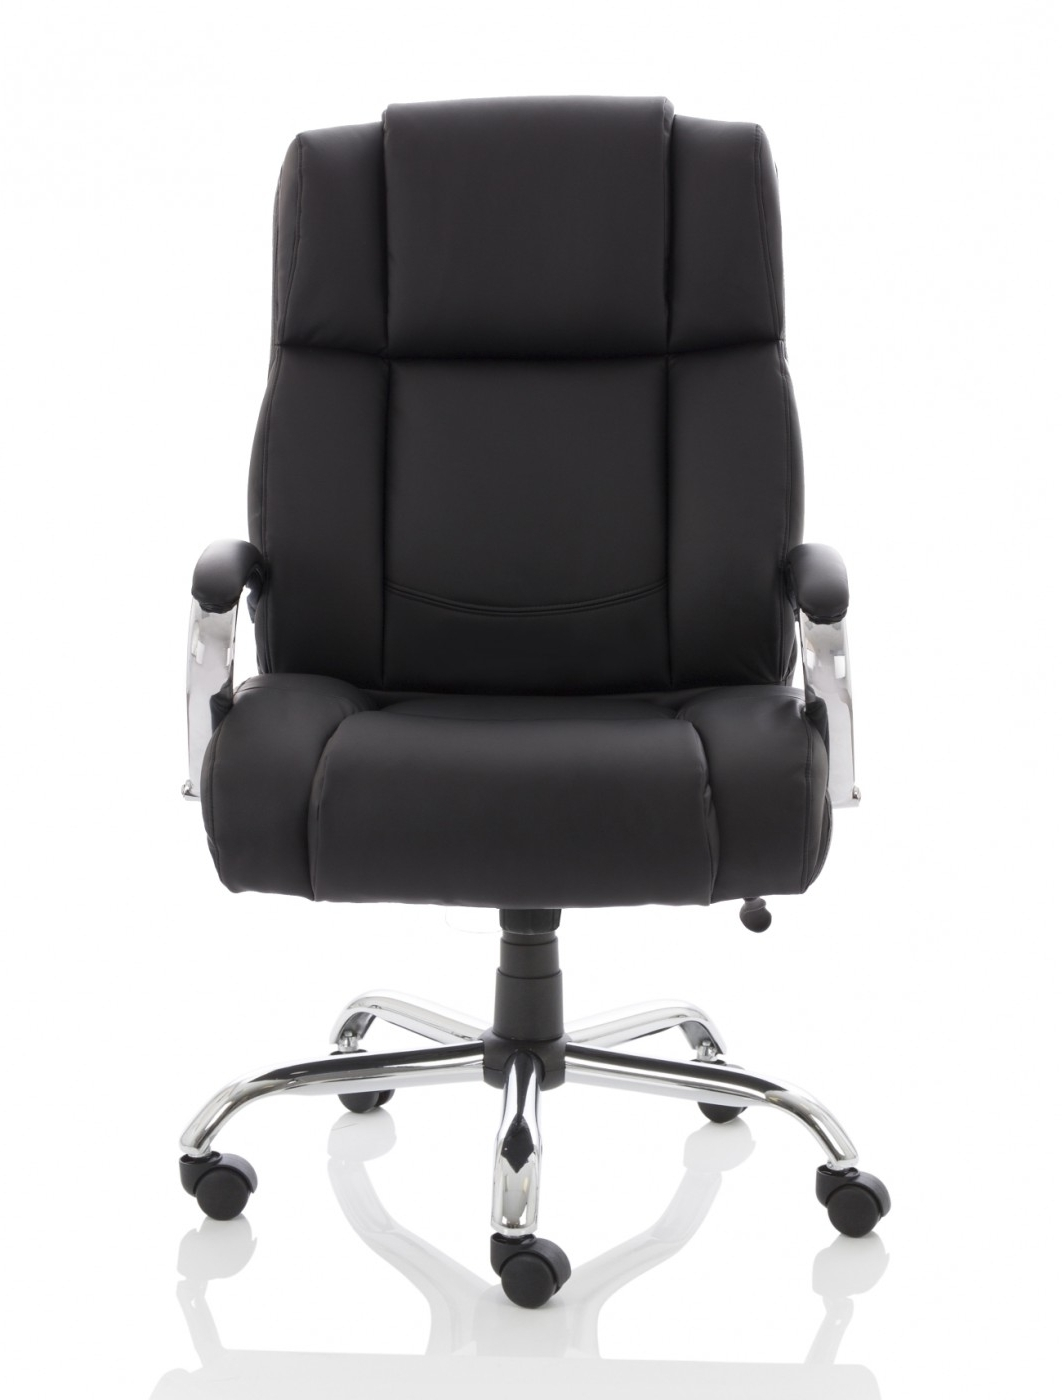 Italian Executive Office Chairs Throughout Most Up To Date Chair : High Back Executive Leather Office Chair Lumbar Support (View 8 of 20)